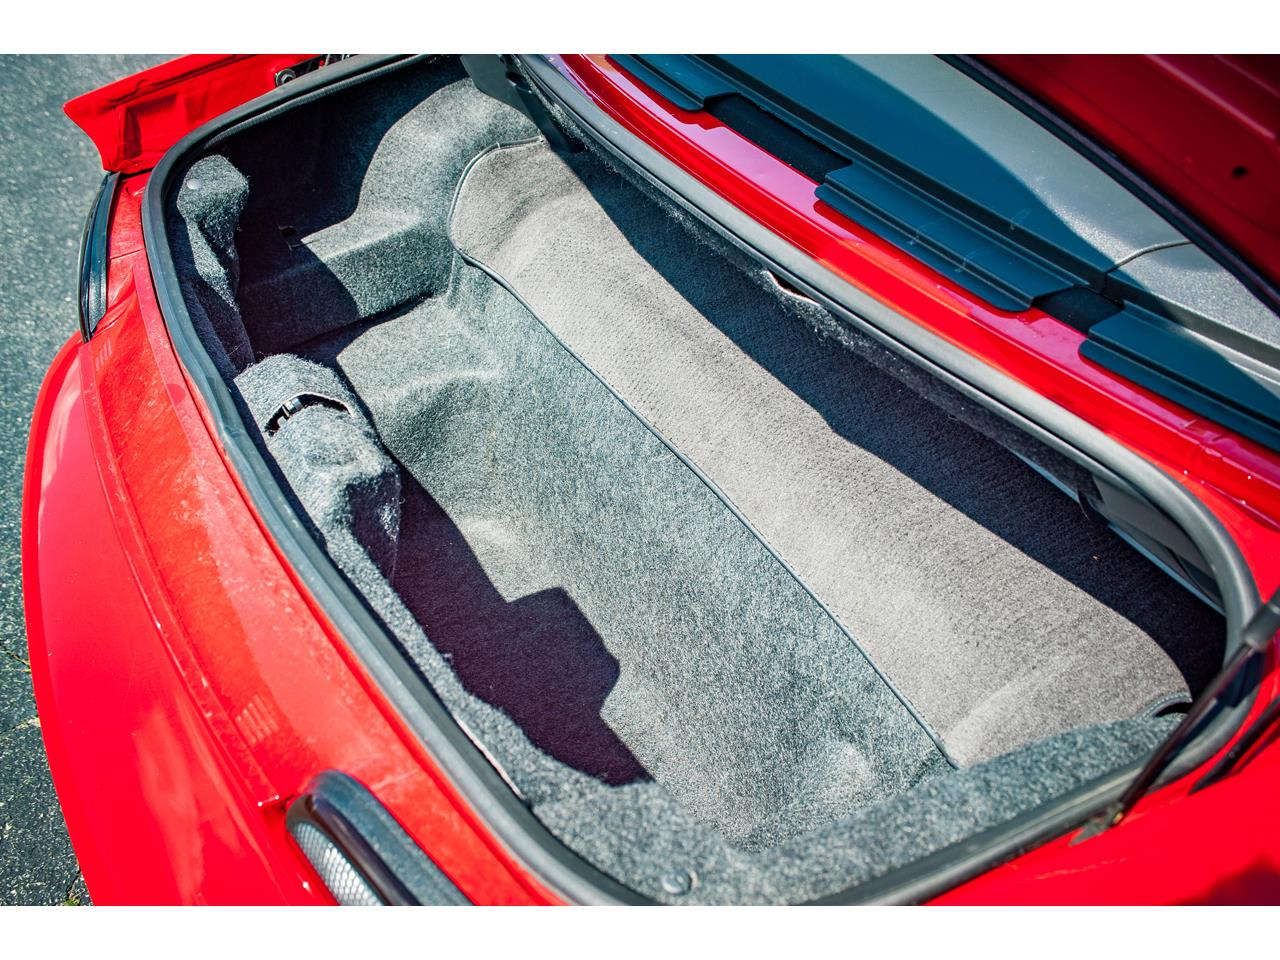 Large Picture of 2002 Chevrolet Camaro - $33,500.00 Offered by Gateway Classic Cars - St. Louis - QB9Z